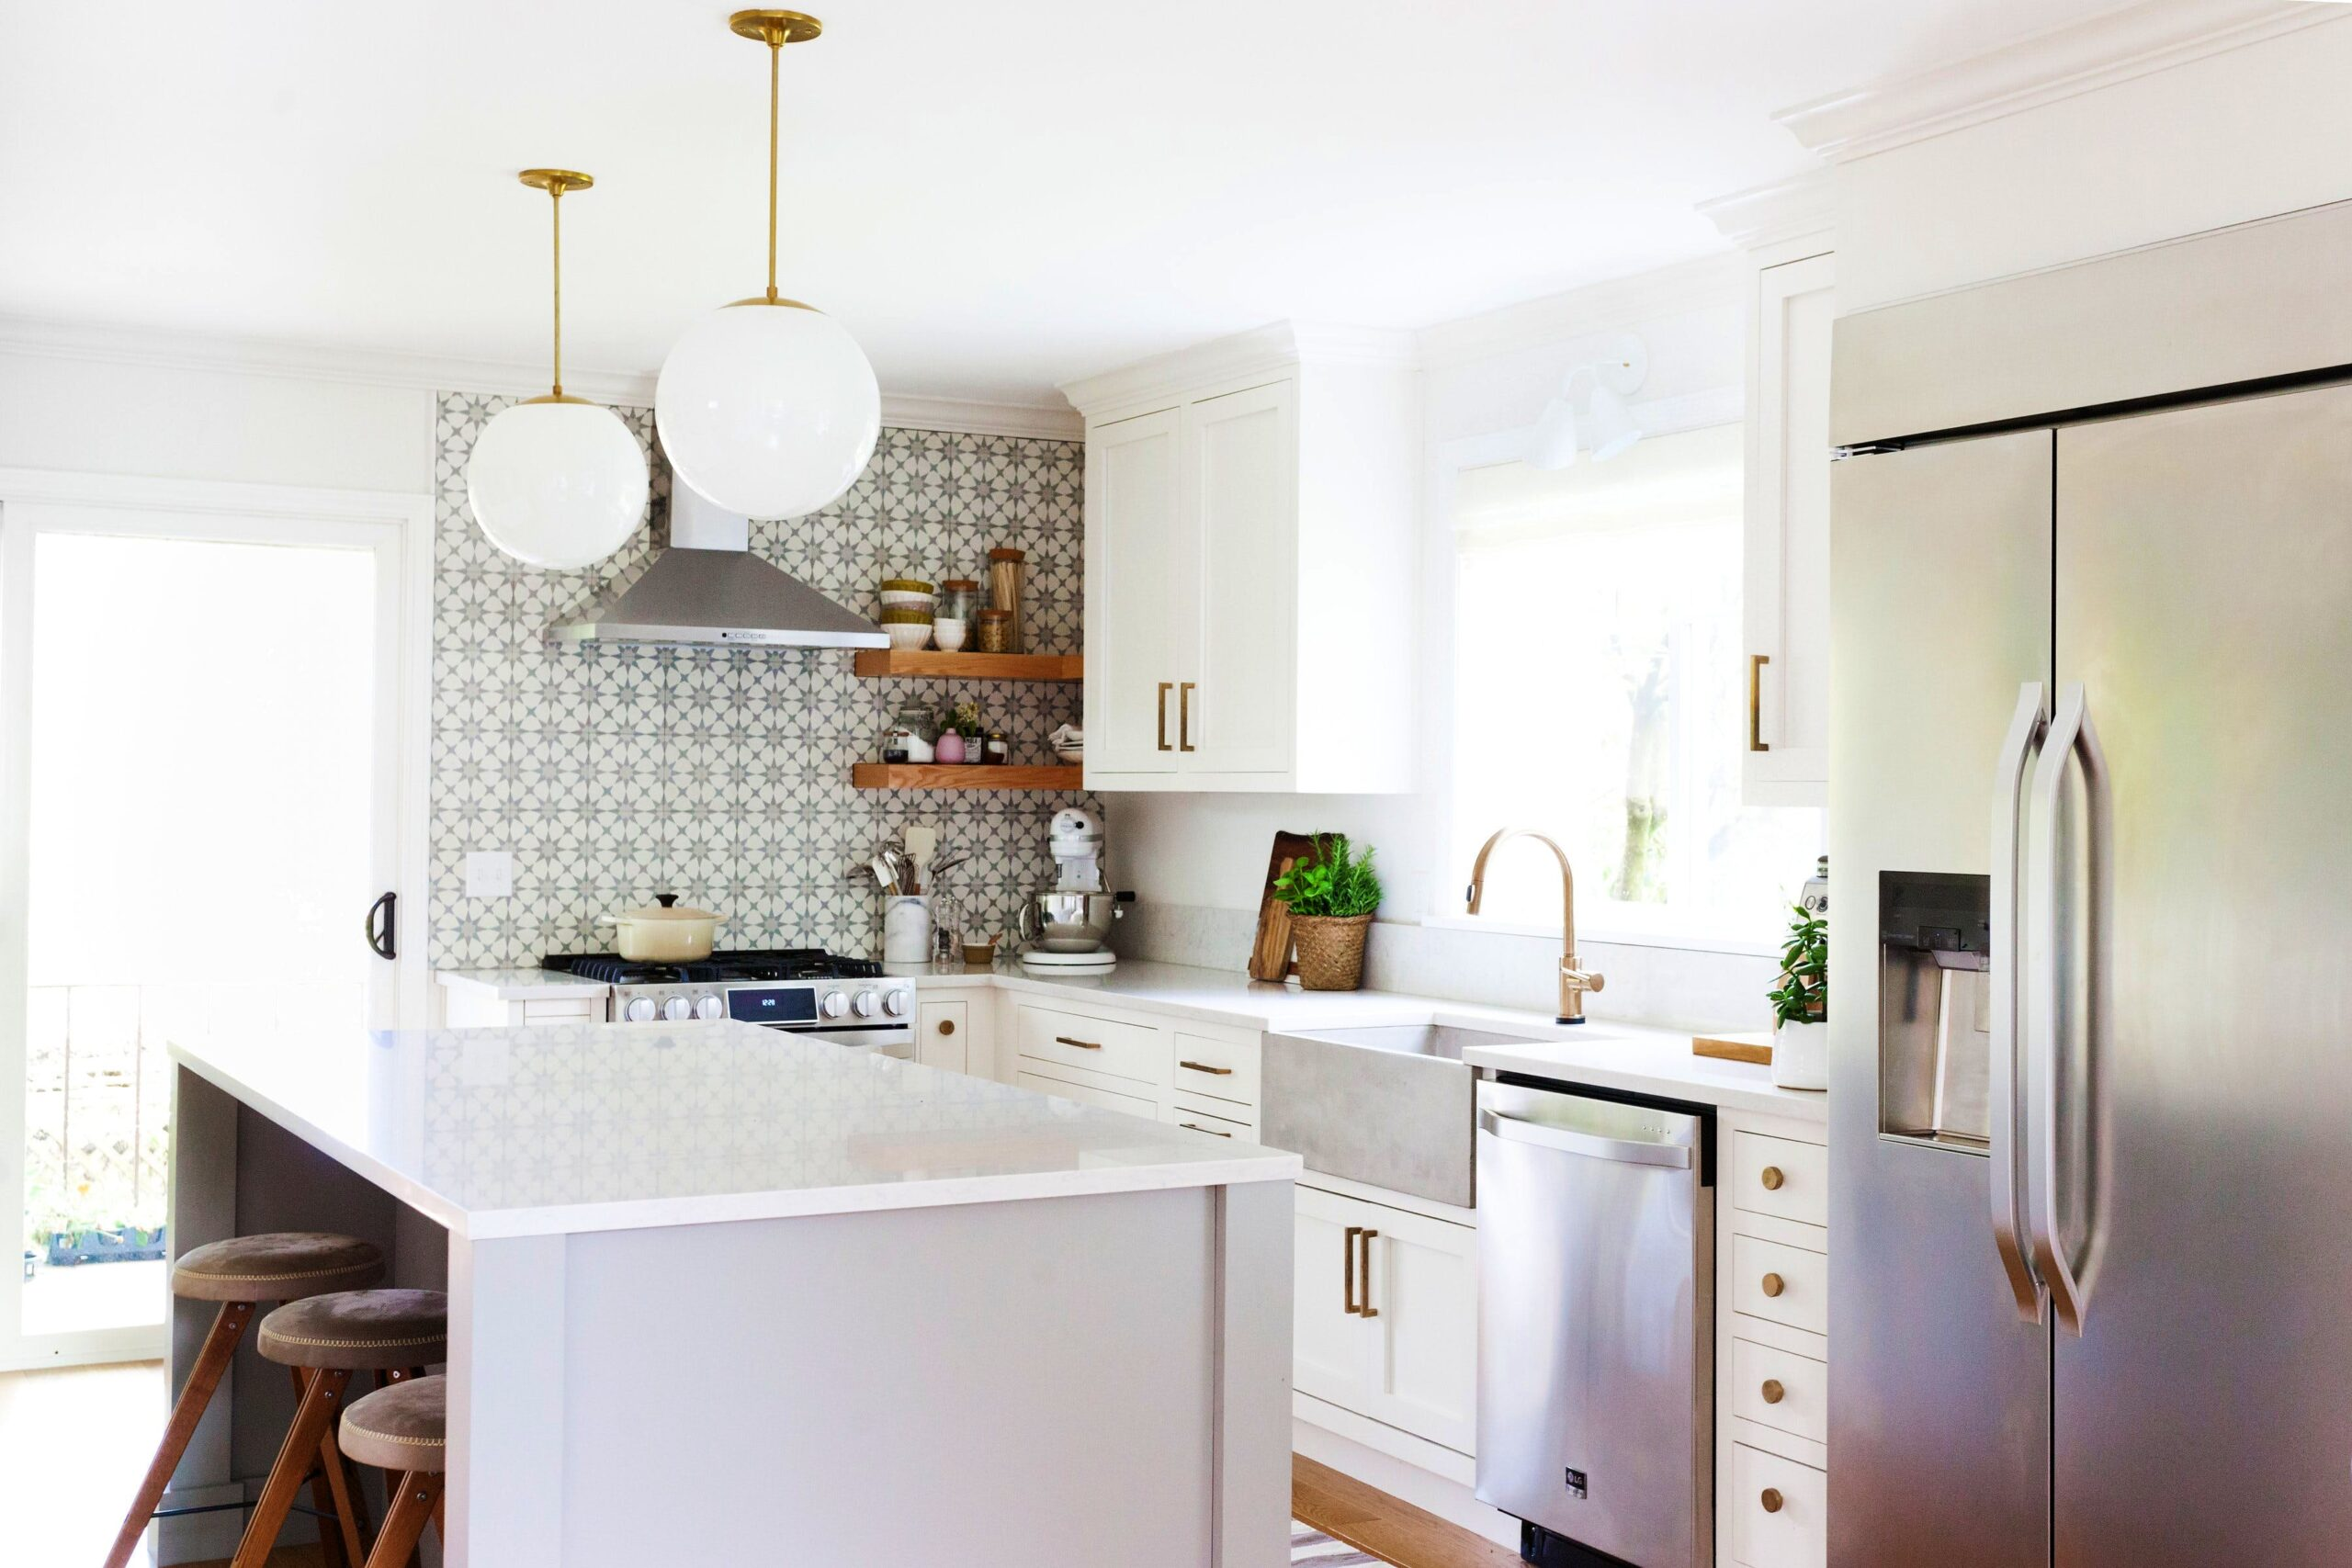 Image of Coco Kelley Kitchen with Silestone® Lagoon worktop 2 1 1 scaled in Coco + Kelley Kitchen Remodel with Silestone® Lagoon - Cosentino